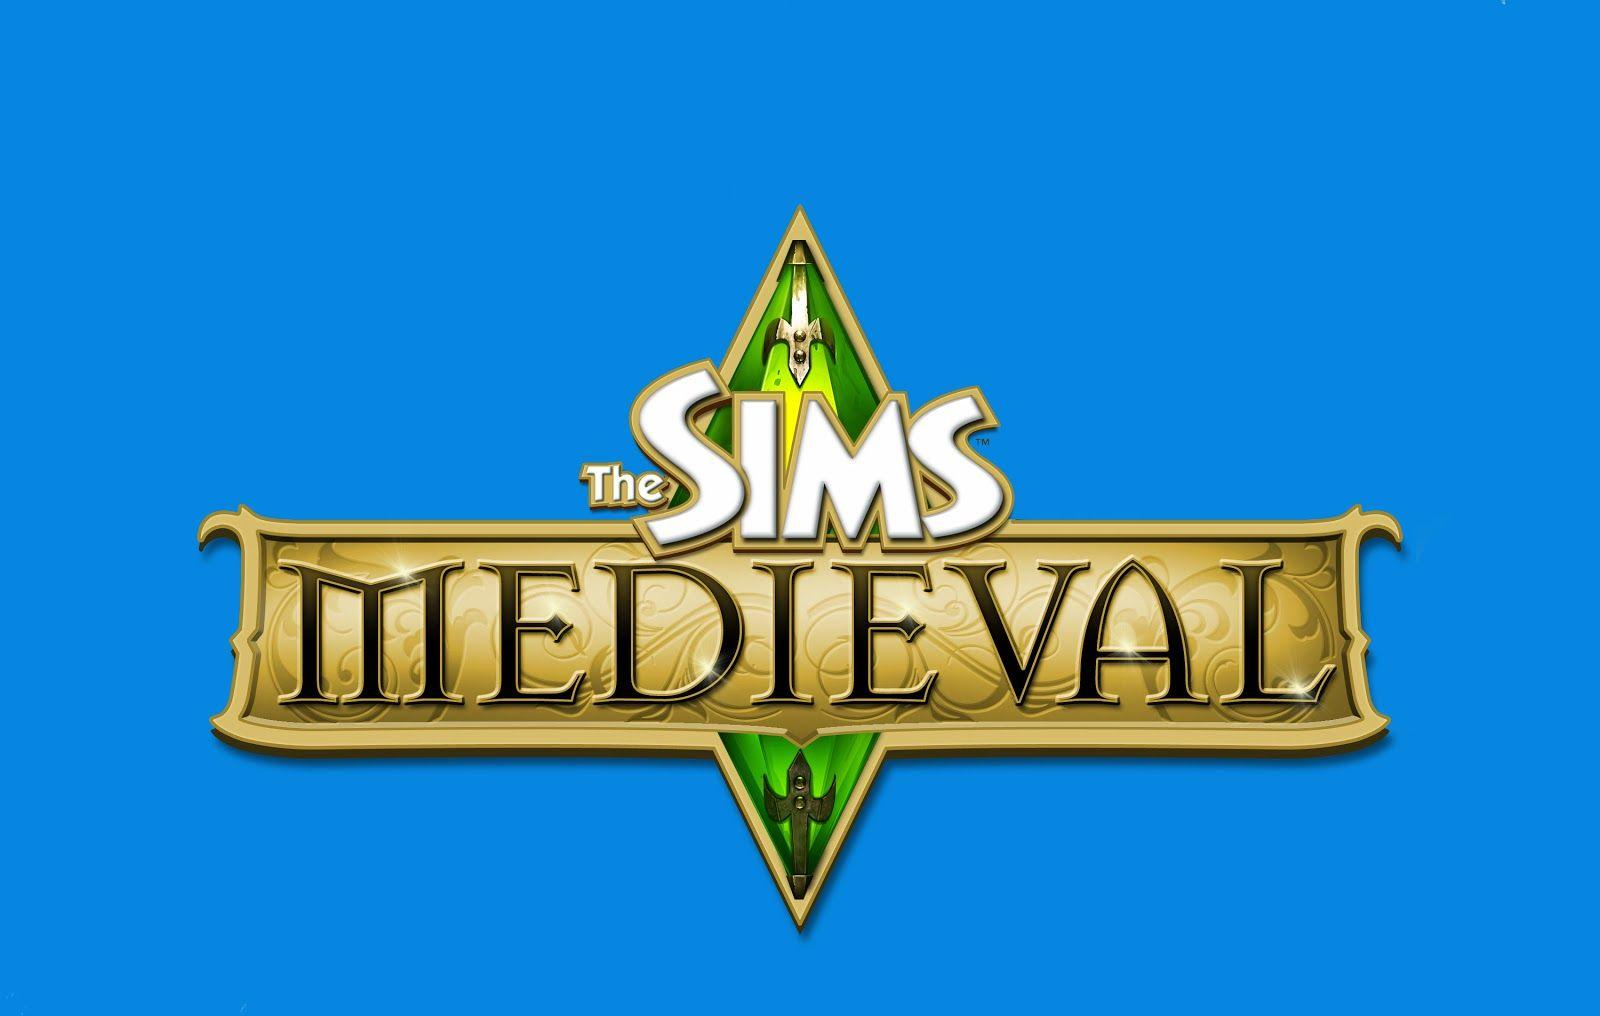 Central Wallpaper: The Sims Medieval HD Wallpapers